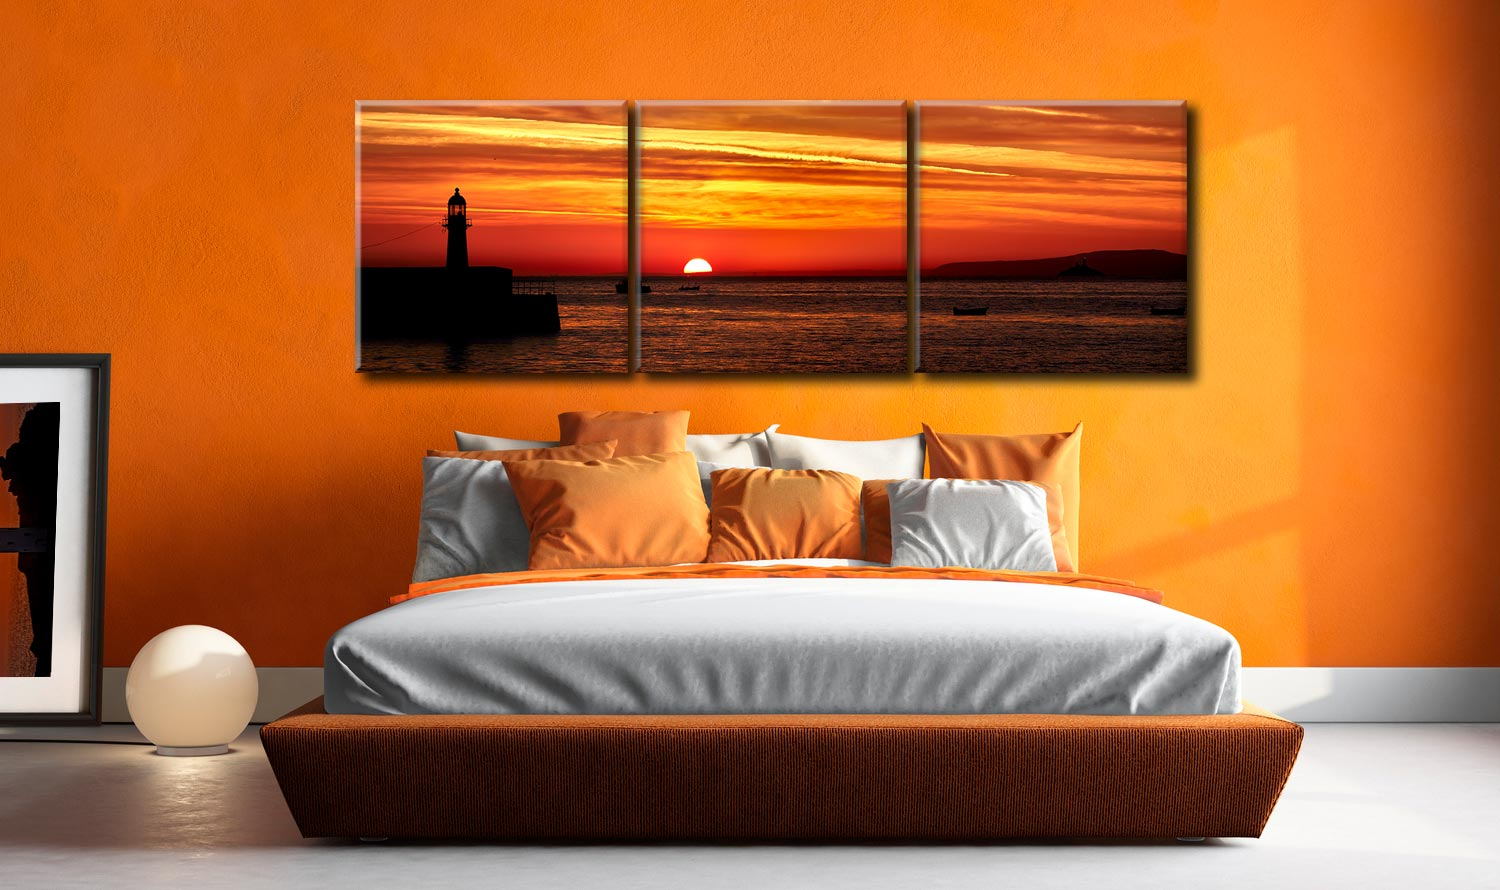 Dawn Breaking Over St Ives Bay - 3 Panel Canvas on Wall